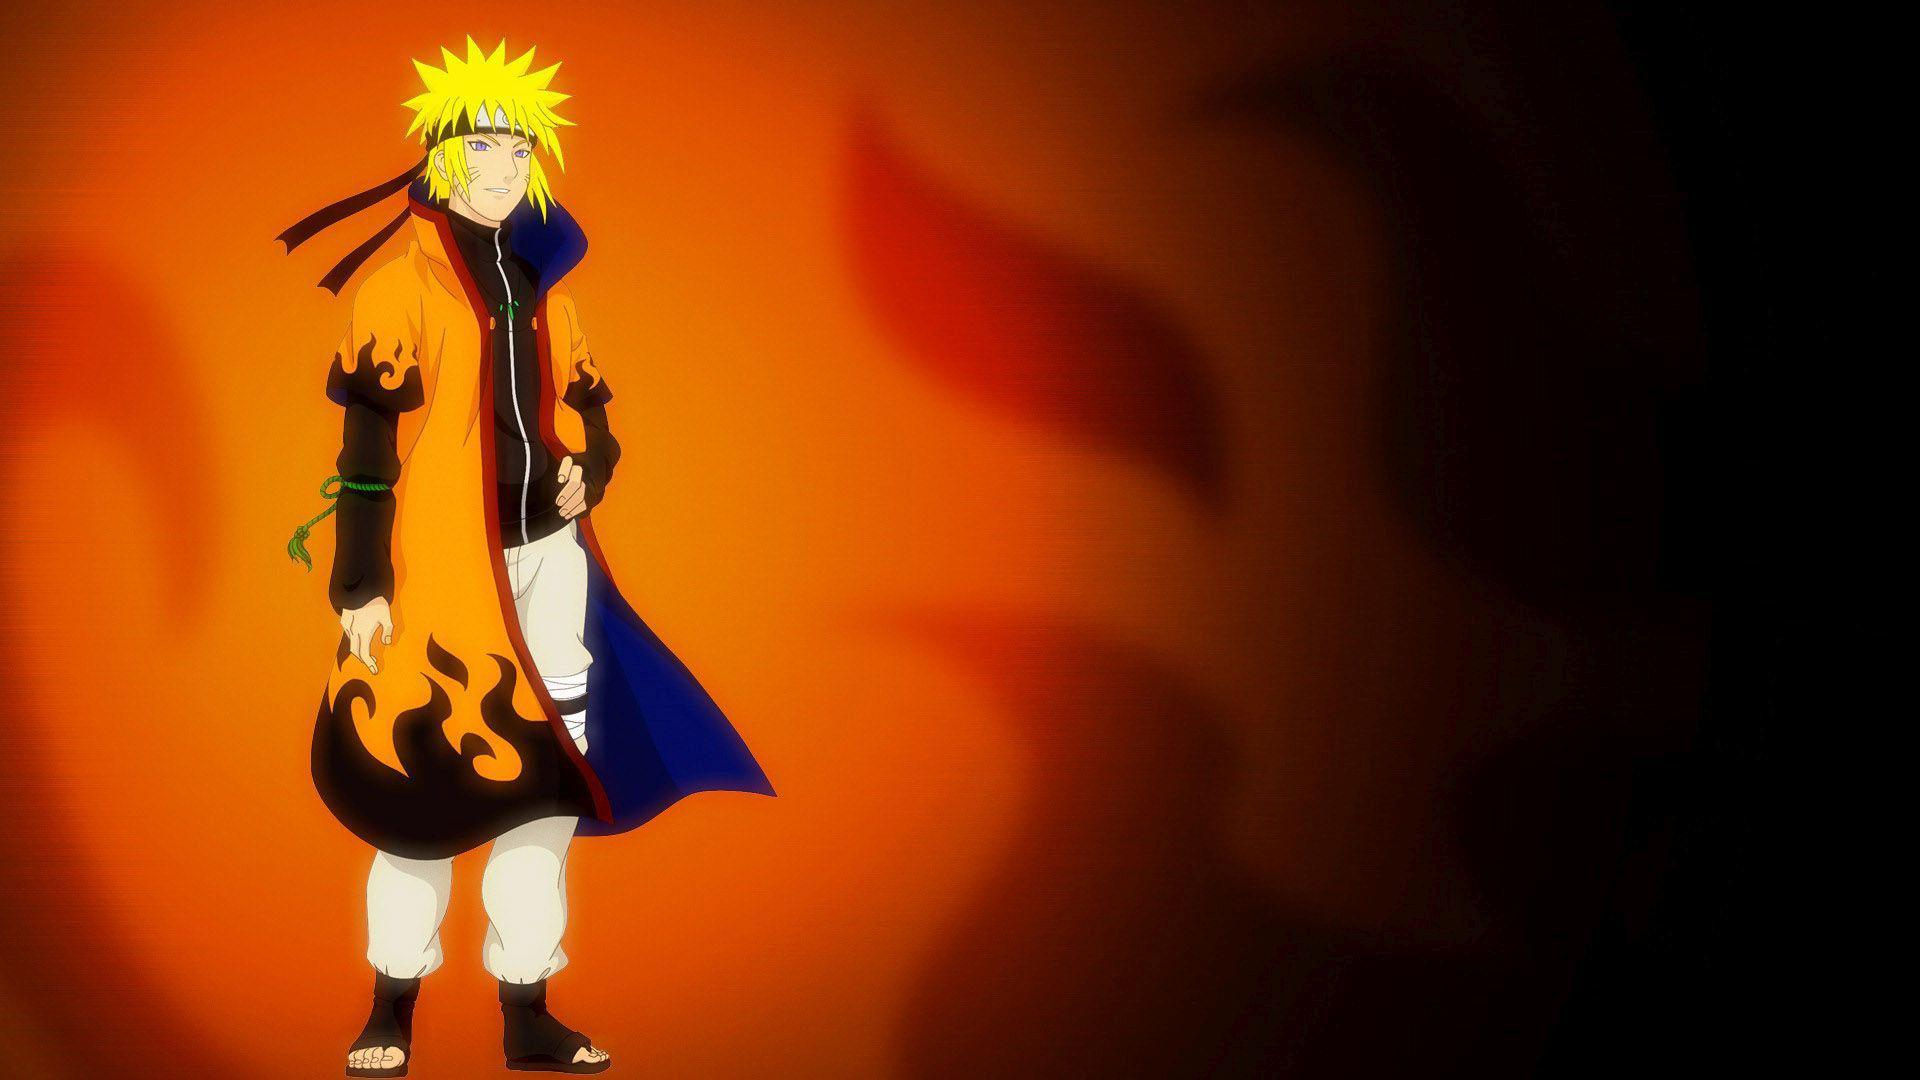 Download Naruto Desktop Wallpaper HD Backgrounds Download